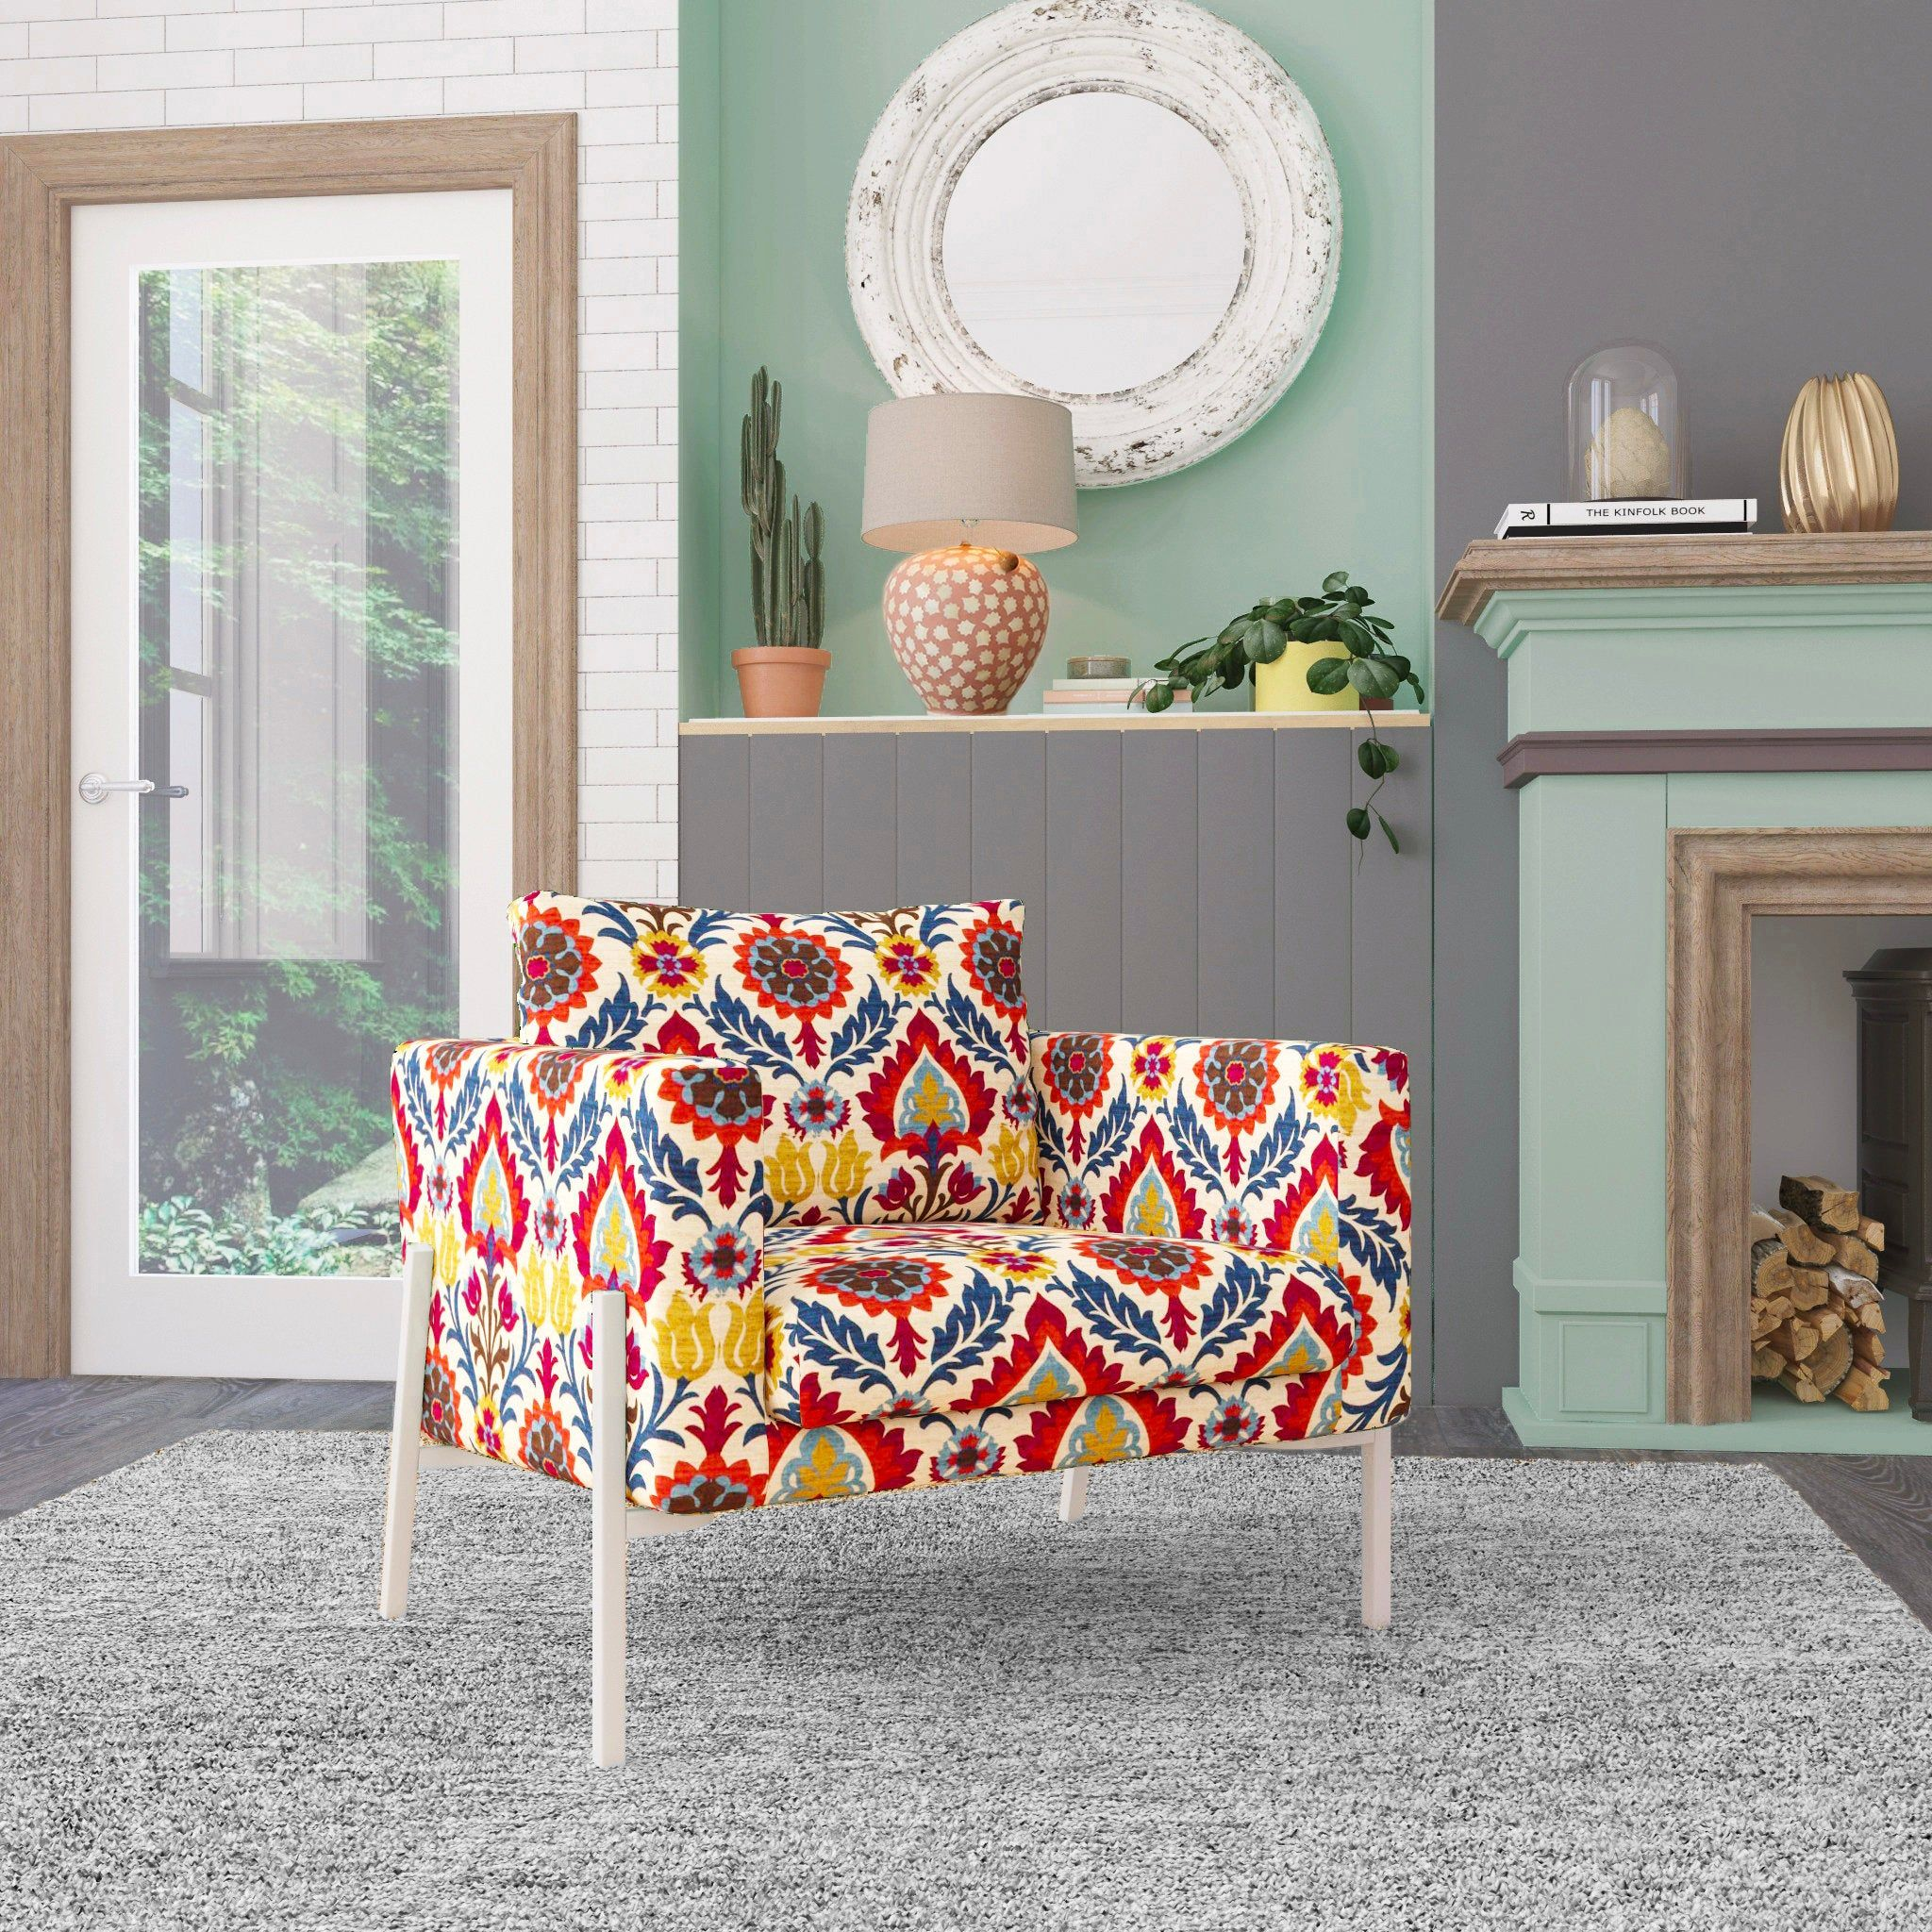 Ikea Koarp Armchair Covers Jewel Tones Colorful Floral Chair